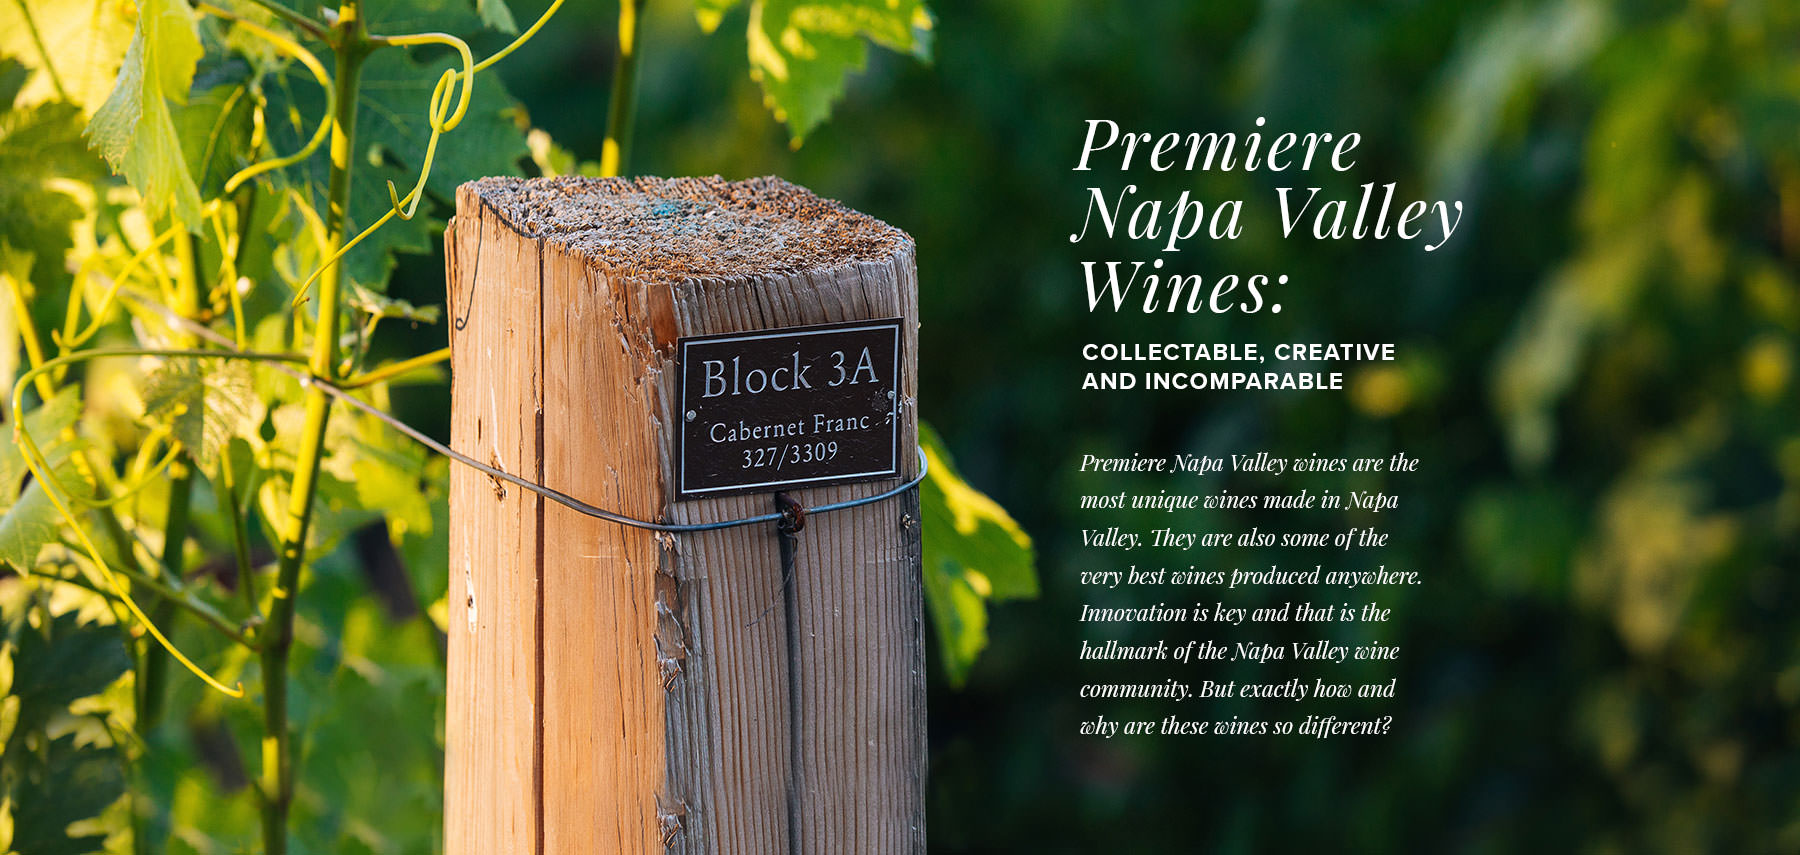 Incomparable Wines - Premiere Napa Valley